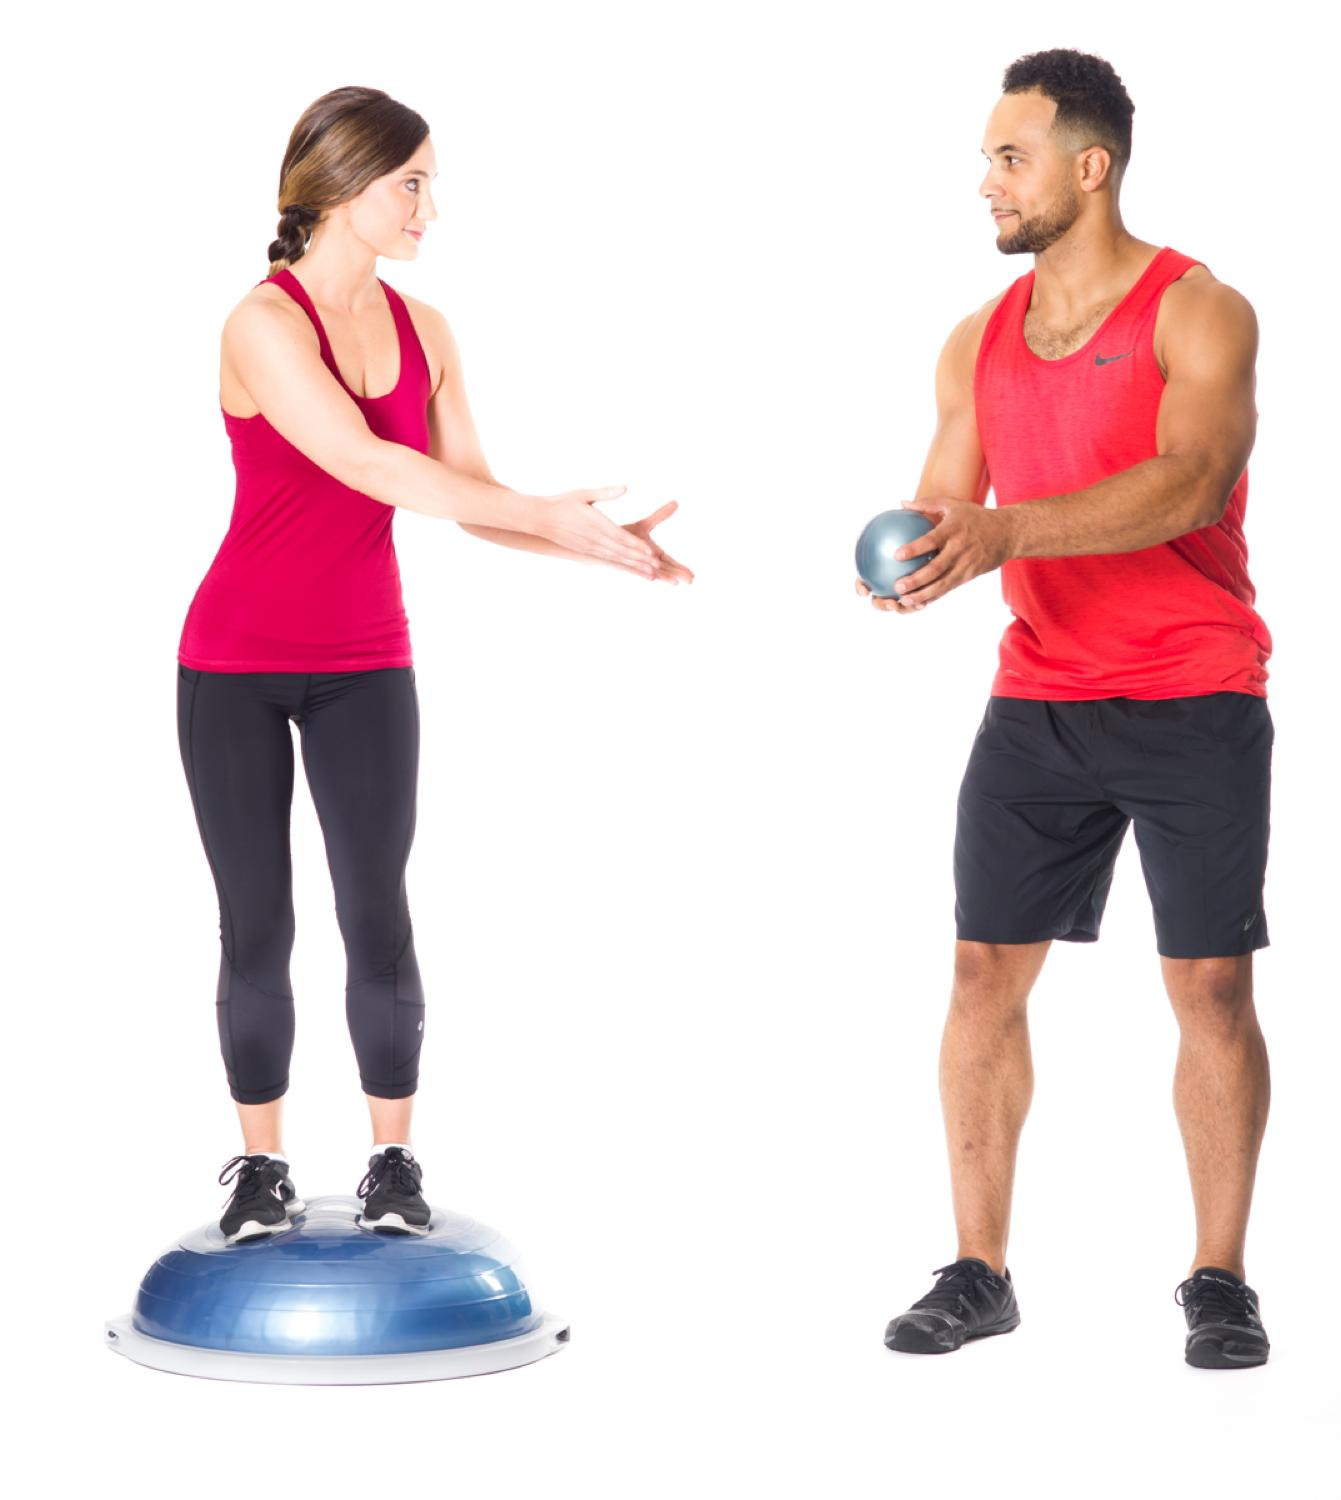 Bosu Ball Exercises For Athletes: Amazon.com : Bosu Pro Balance Trainer : Exercise Balls